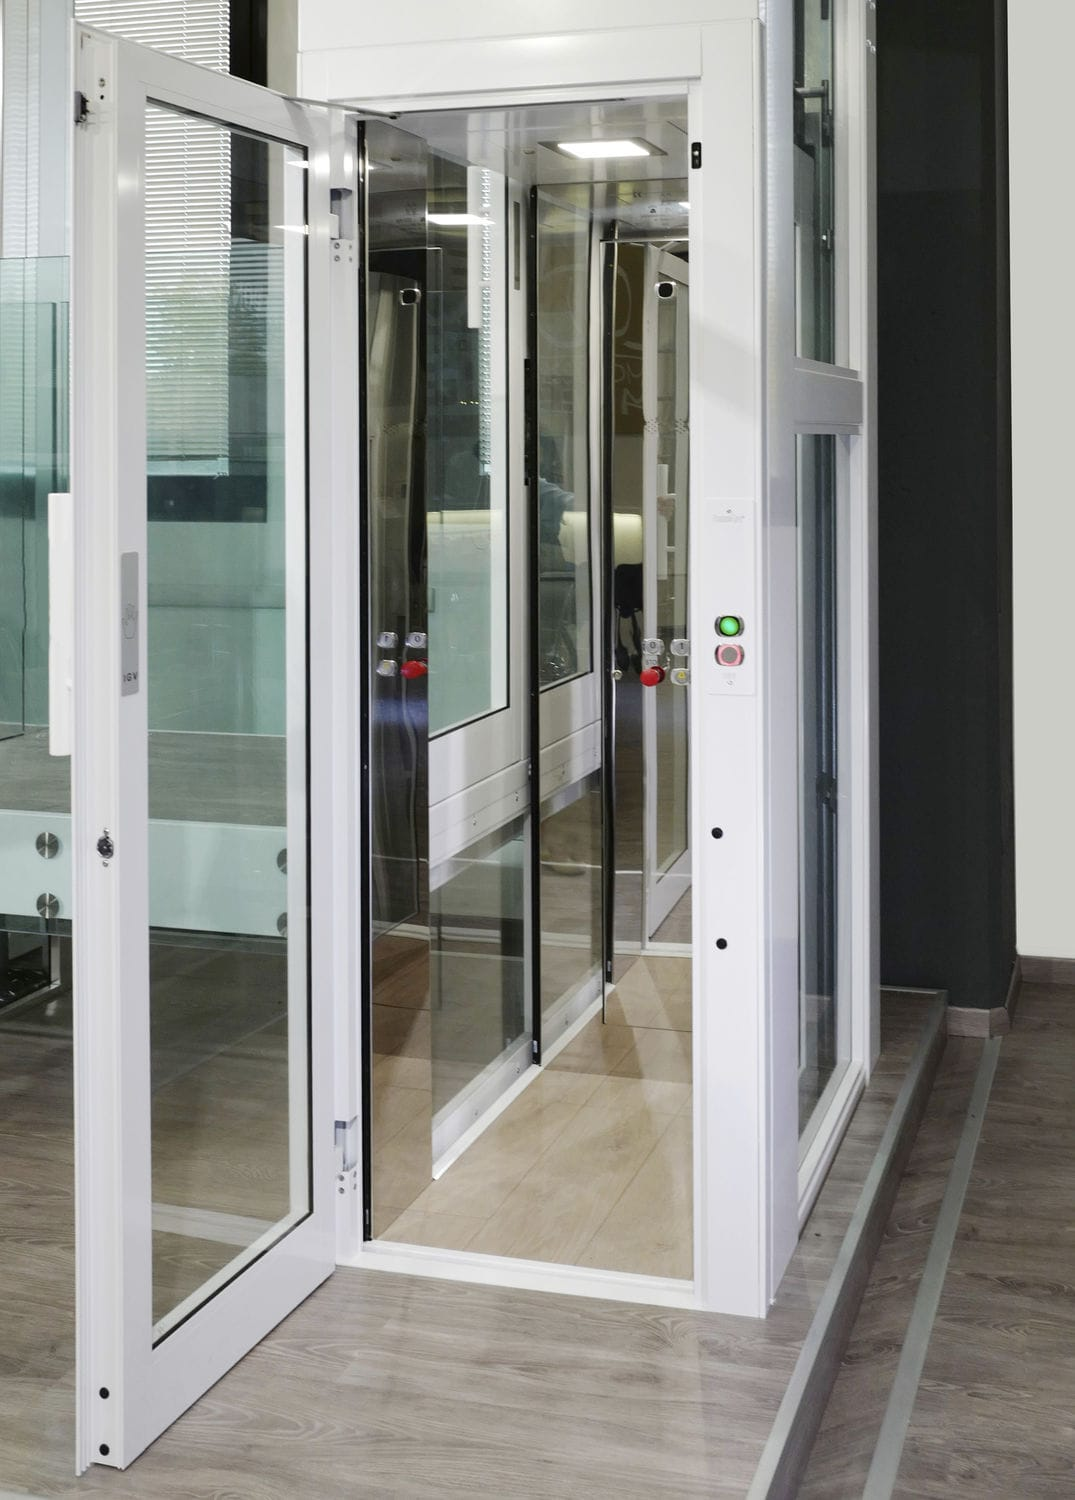 Home lift hydraulic DOMUSLIFT XS EXTRA SMALL IGV Group Videos